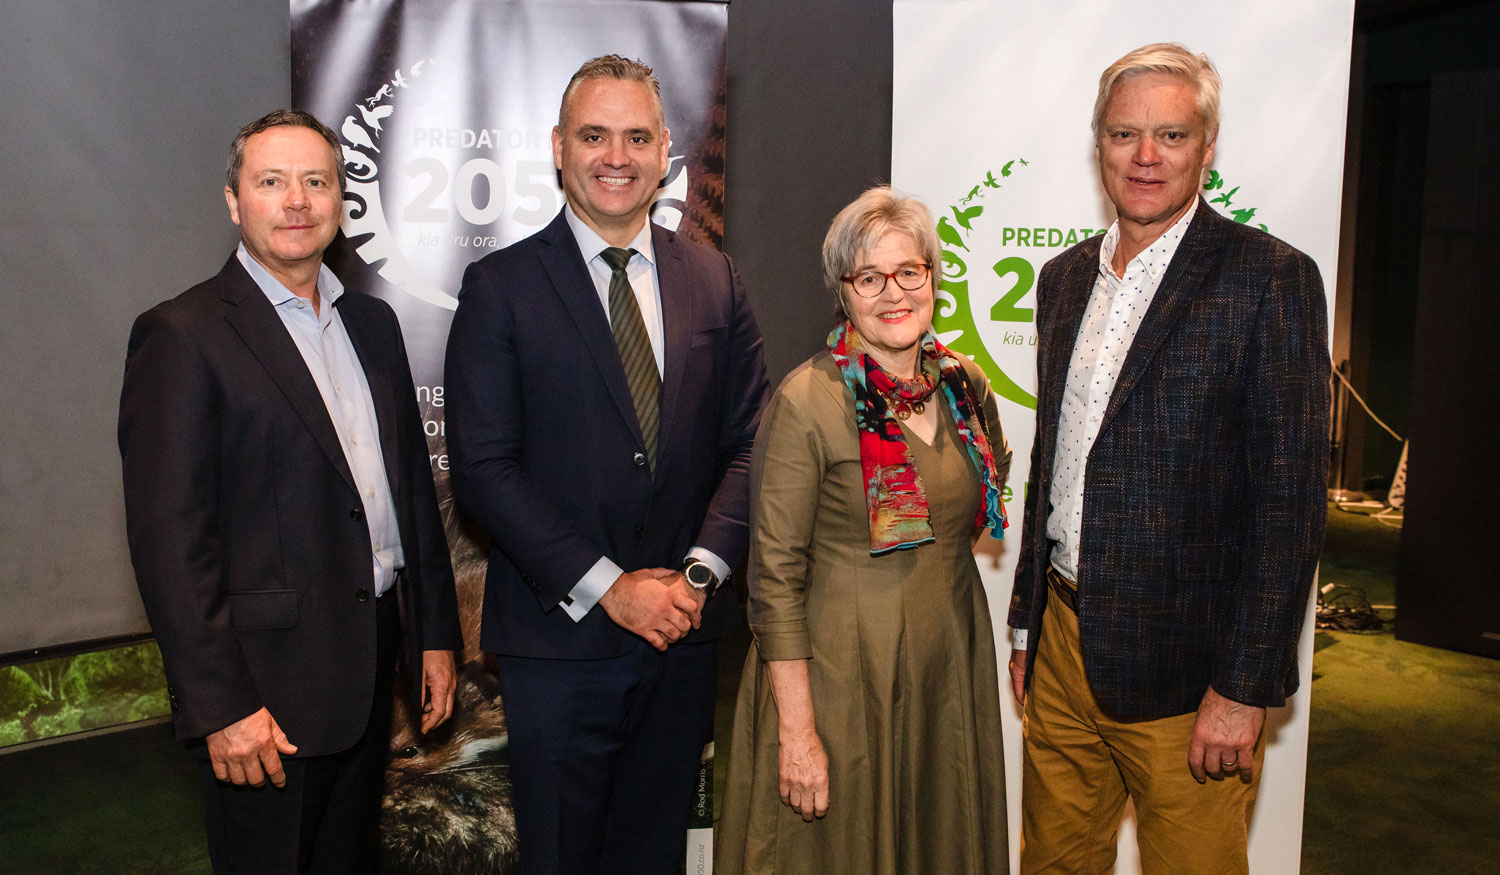 (L-R) Ed Chignell: CEO Predator Free 2050, Fletcher Tabuteau: Parliamentary Under-Secretary Regional Economic Development, Hon Eugenie Sage: Minister for Conservation, Mark Binns: Chairman Hammerforce